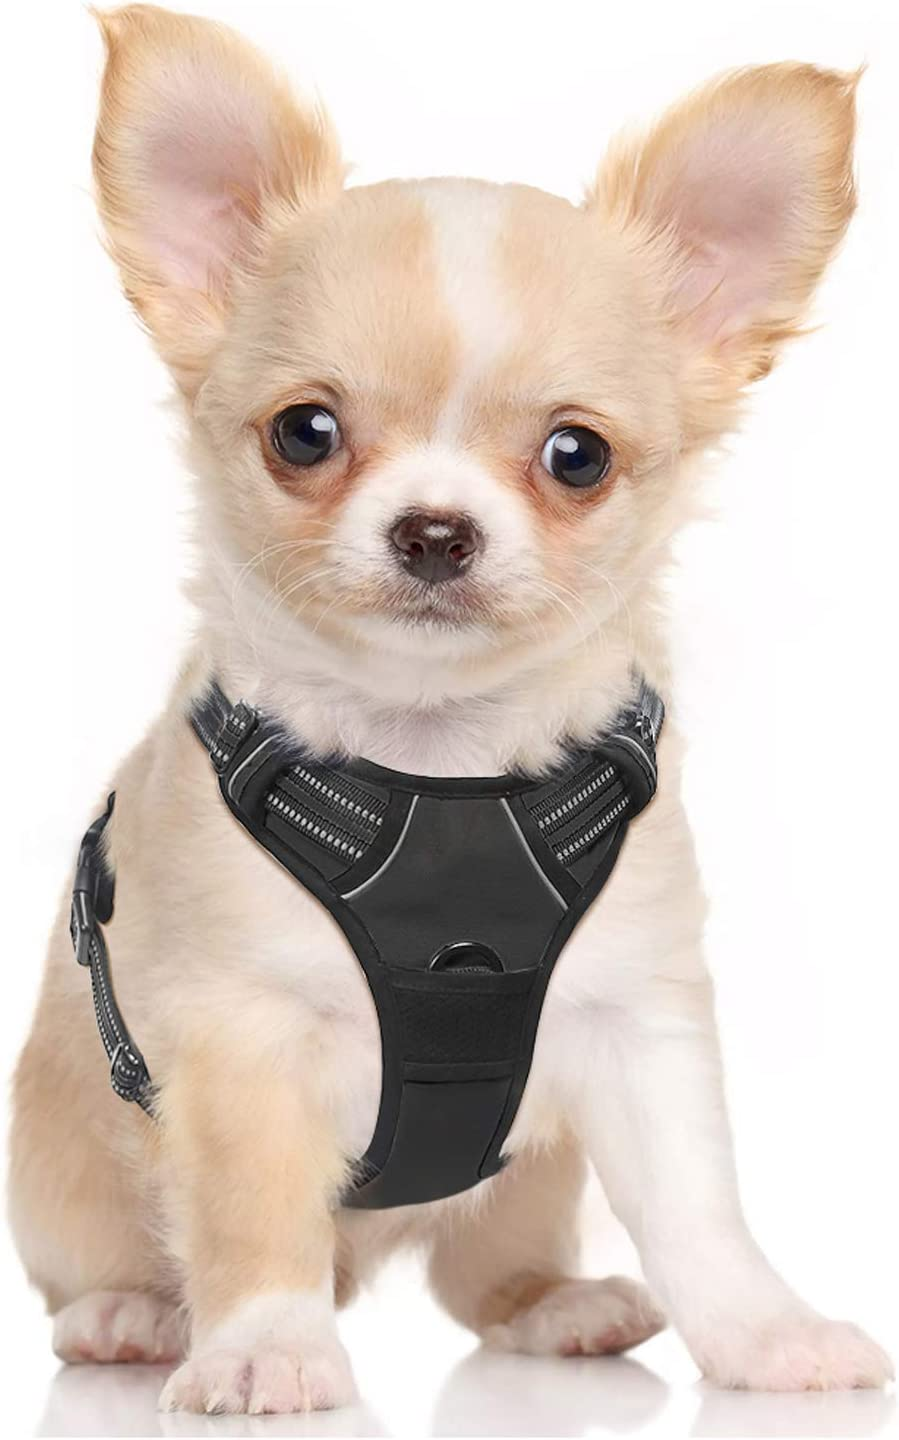 Top 10 Dog Harnesses | 2020 Updated Review 7